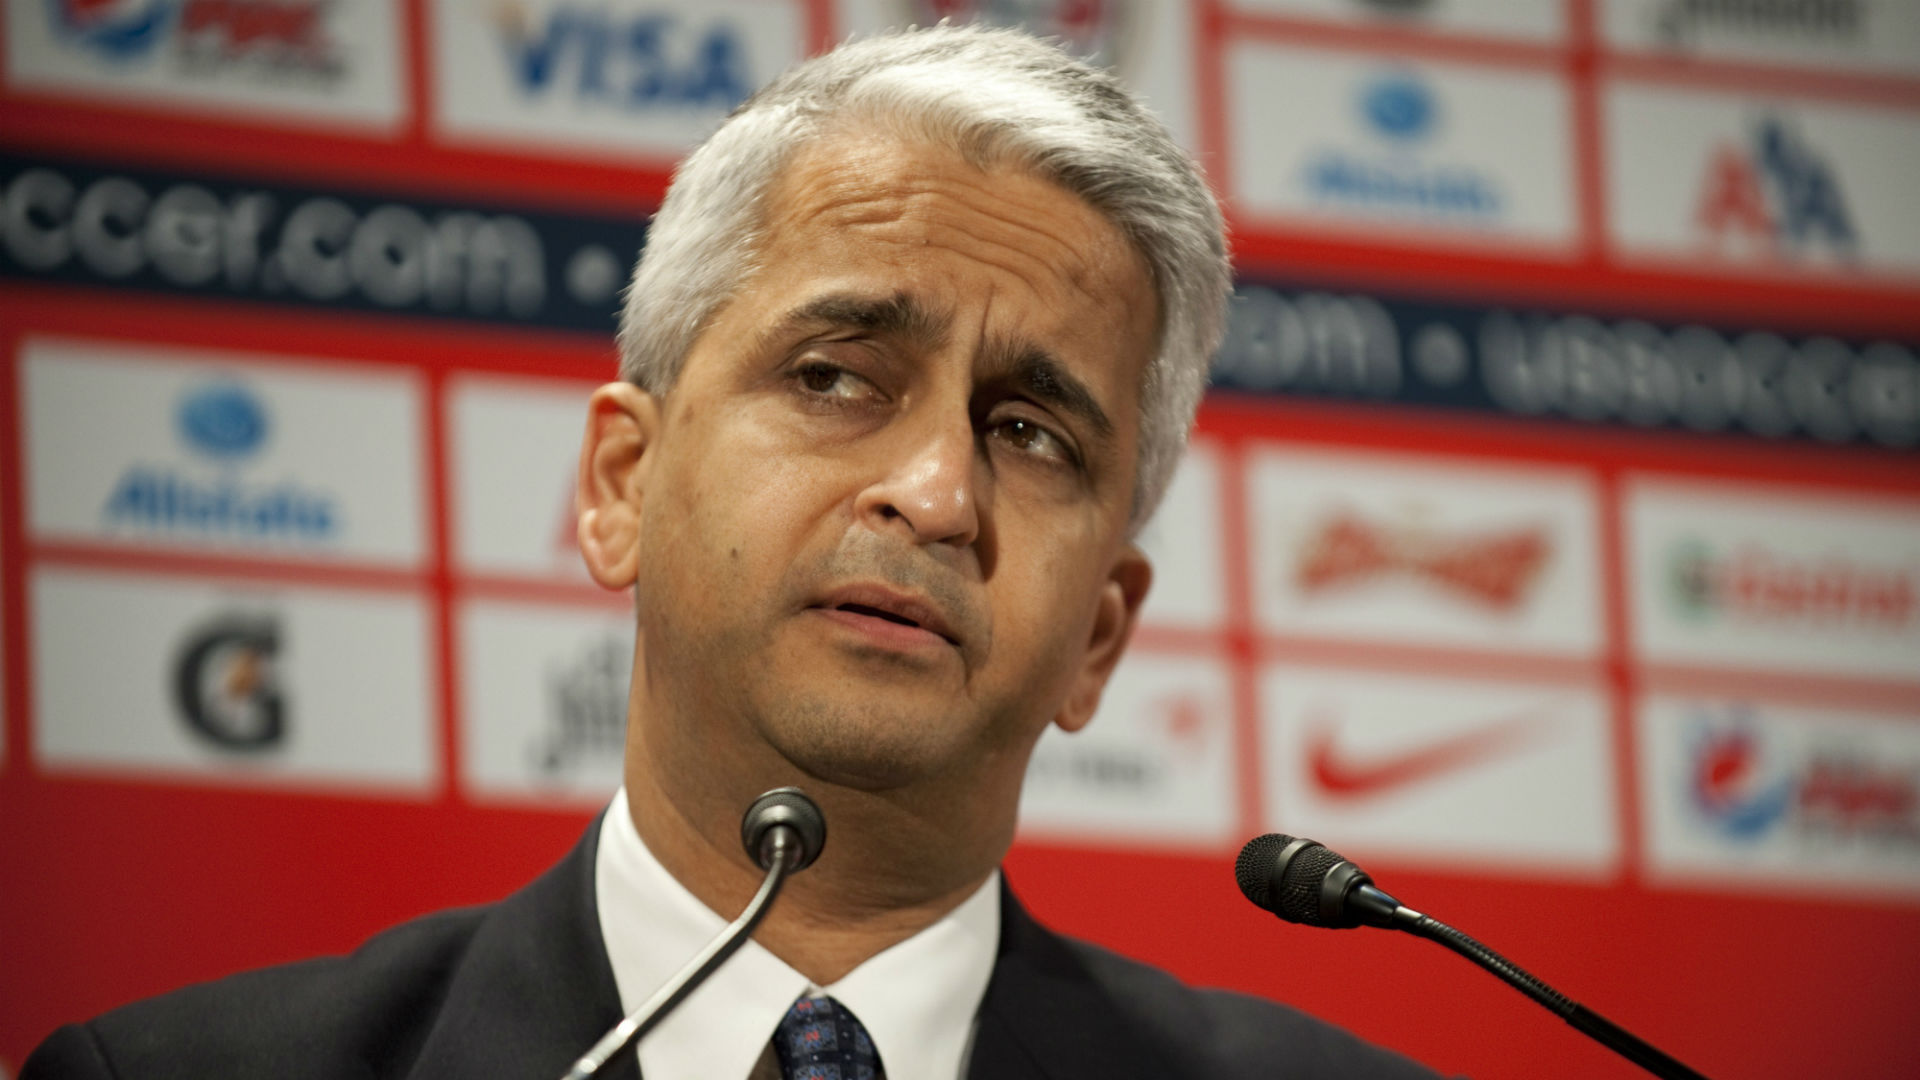 CONCACAF institutes extensive reforms in wake of FIFA corruption scandal